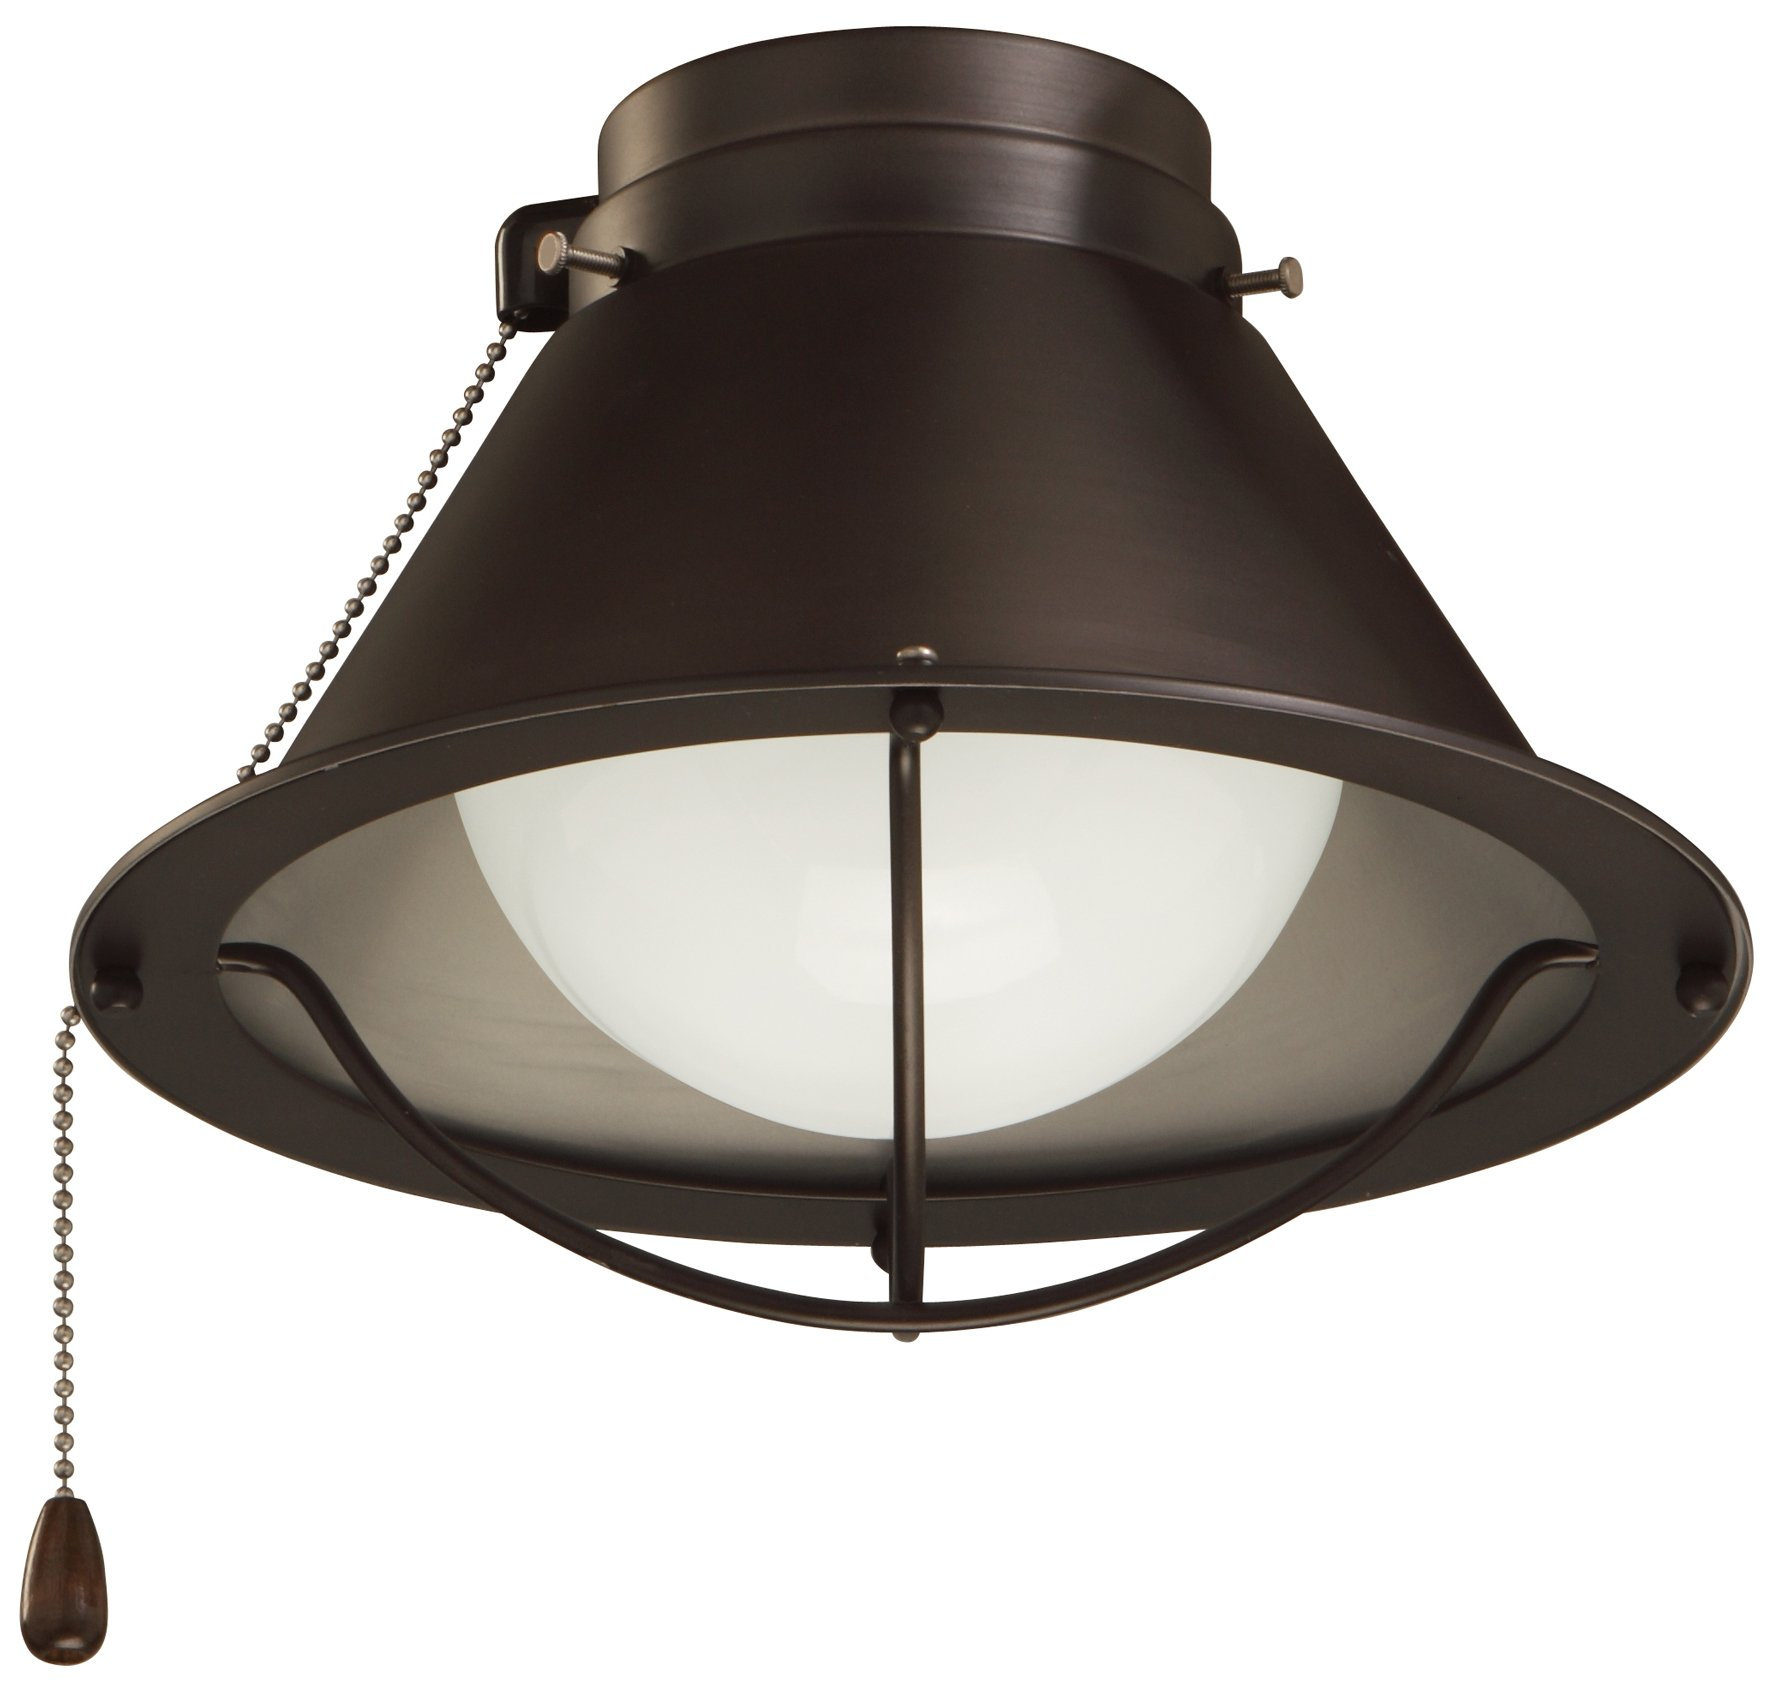 Emerson lk46 seaside wet location classic ceiling fan light kit em lk46 orb oil rubbed bronze aloadofball Choice Image